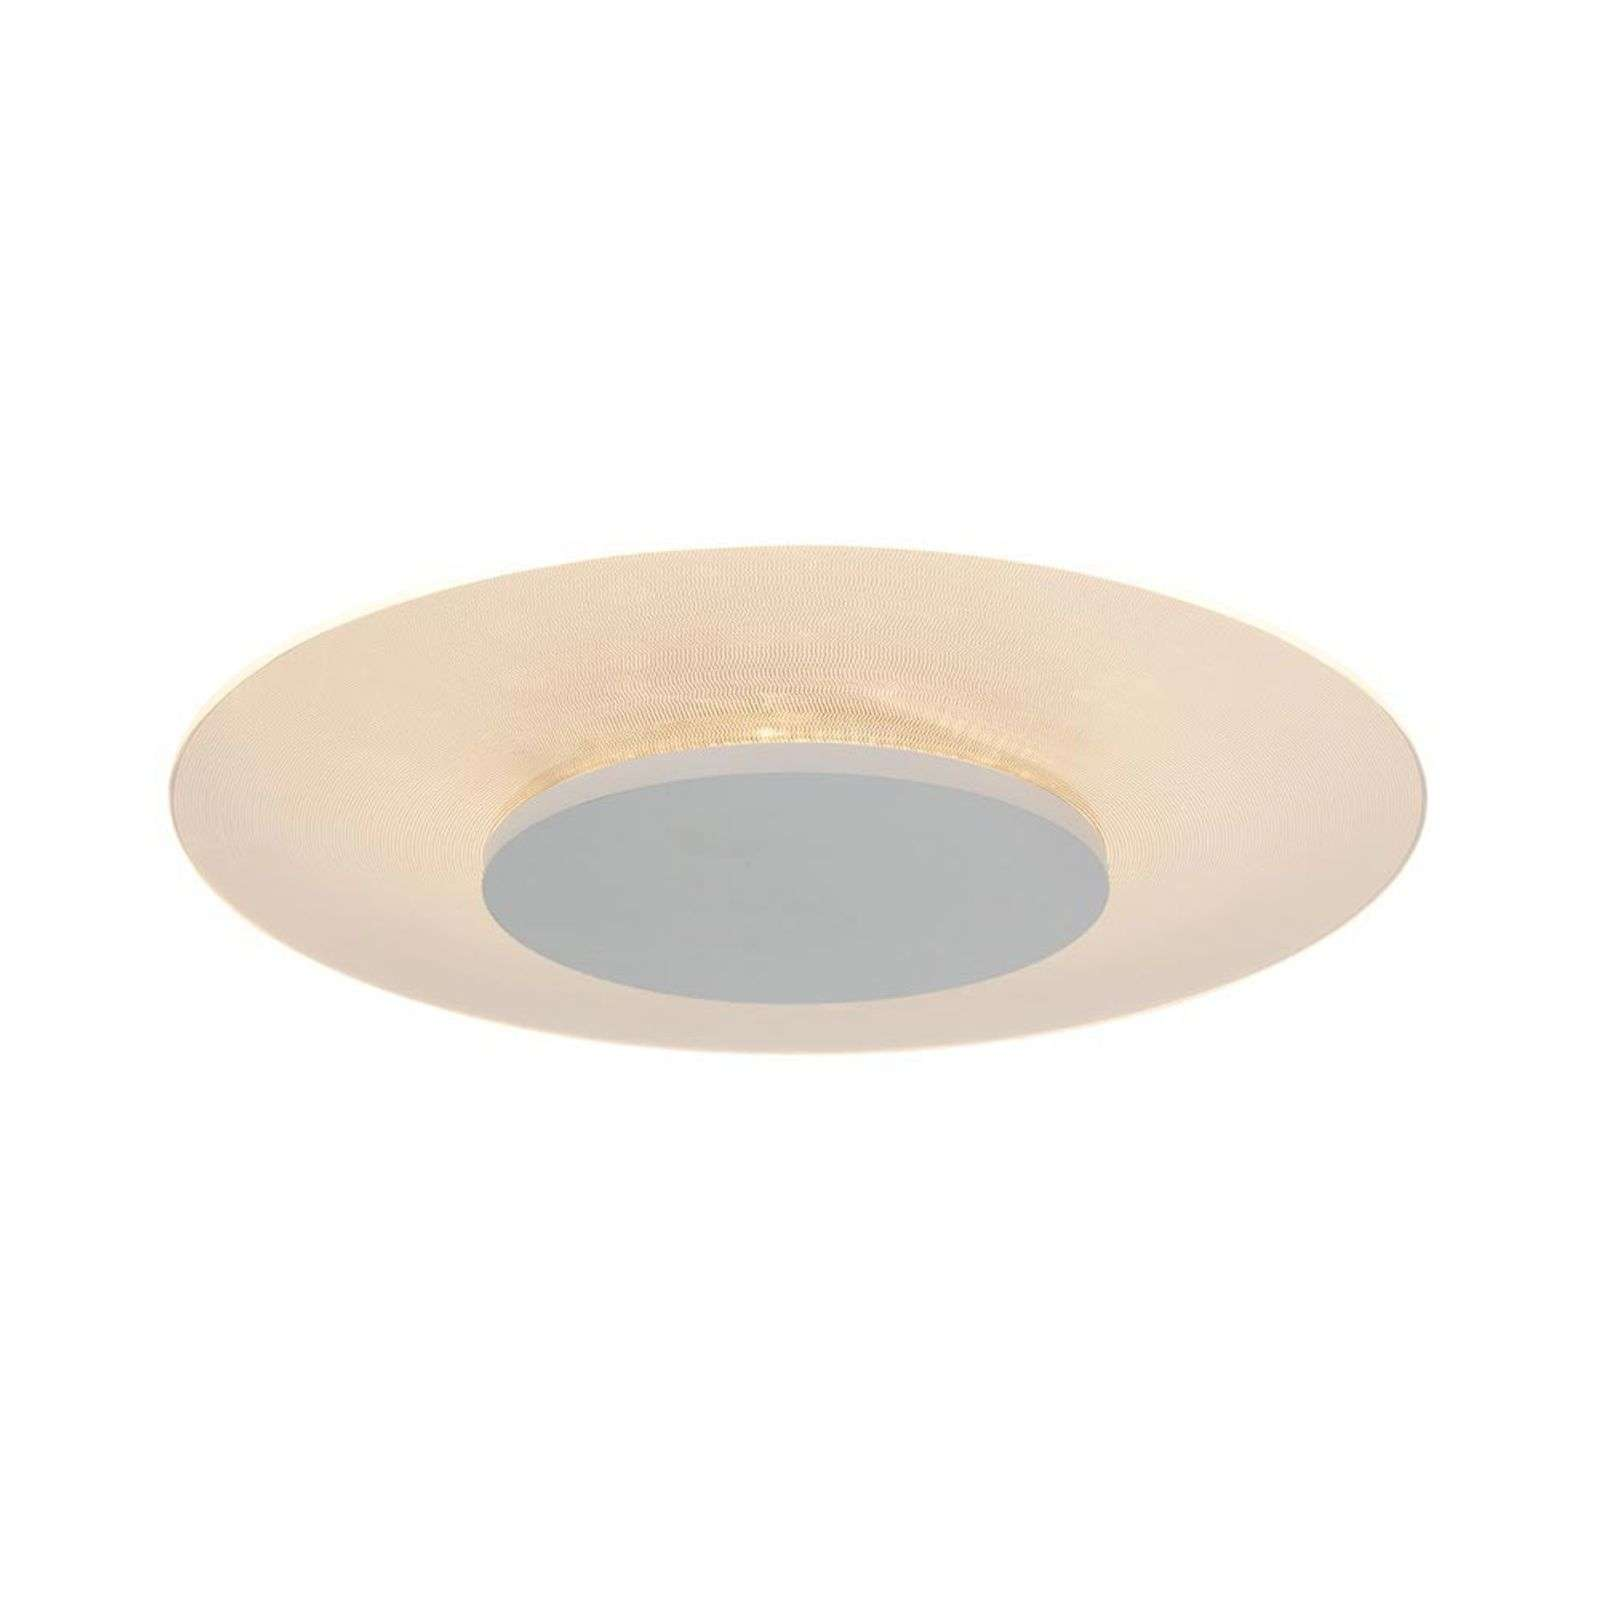 Plafonnier LED rond Pikka blanc, dimmable